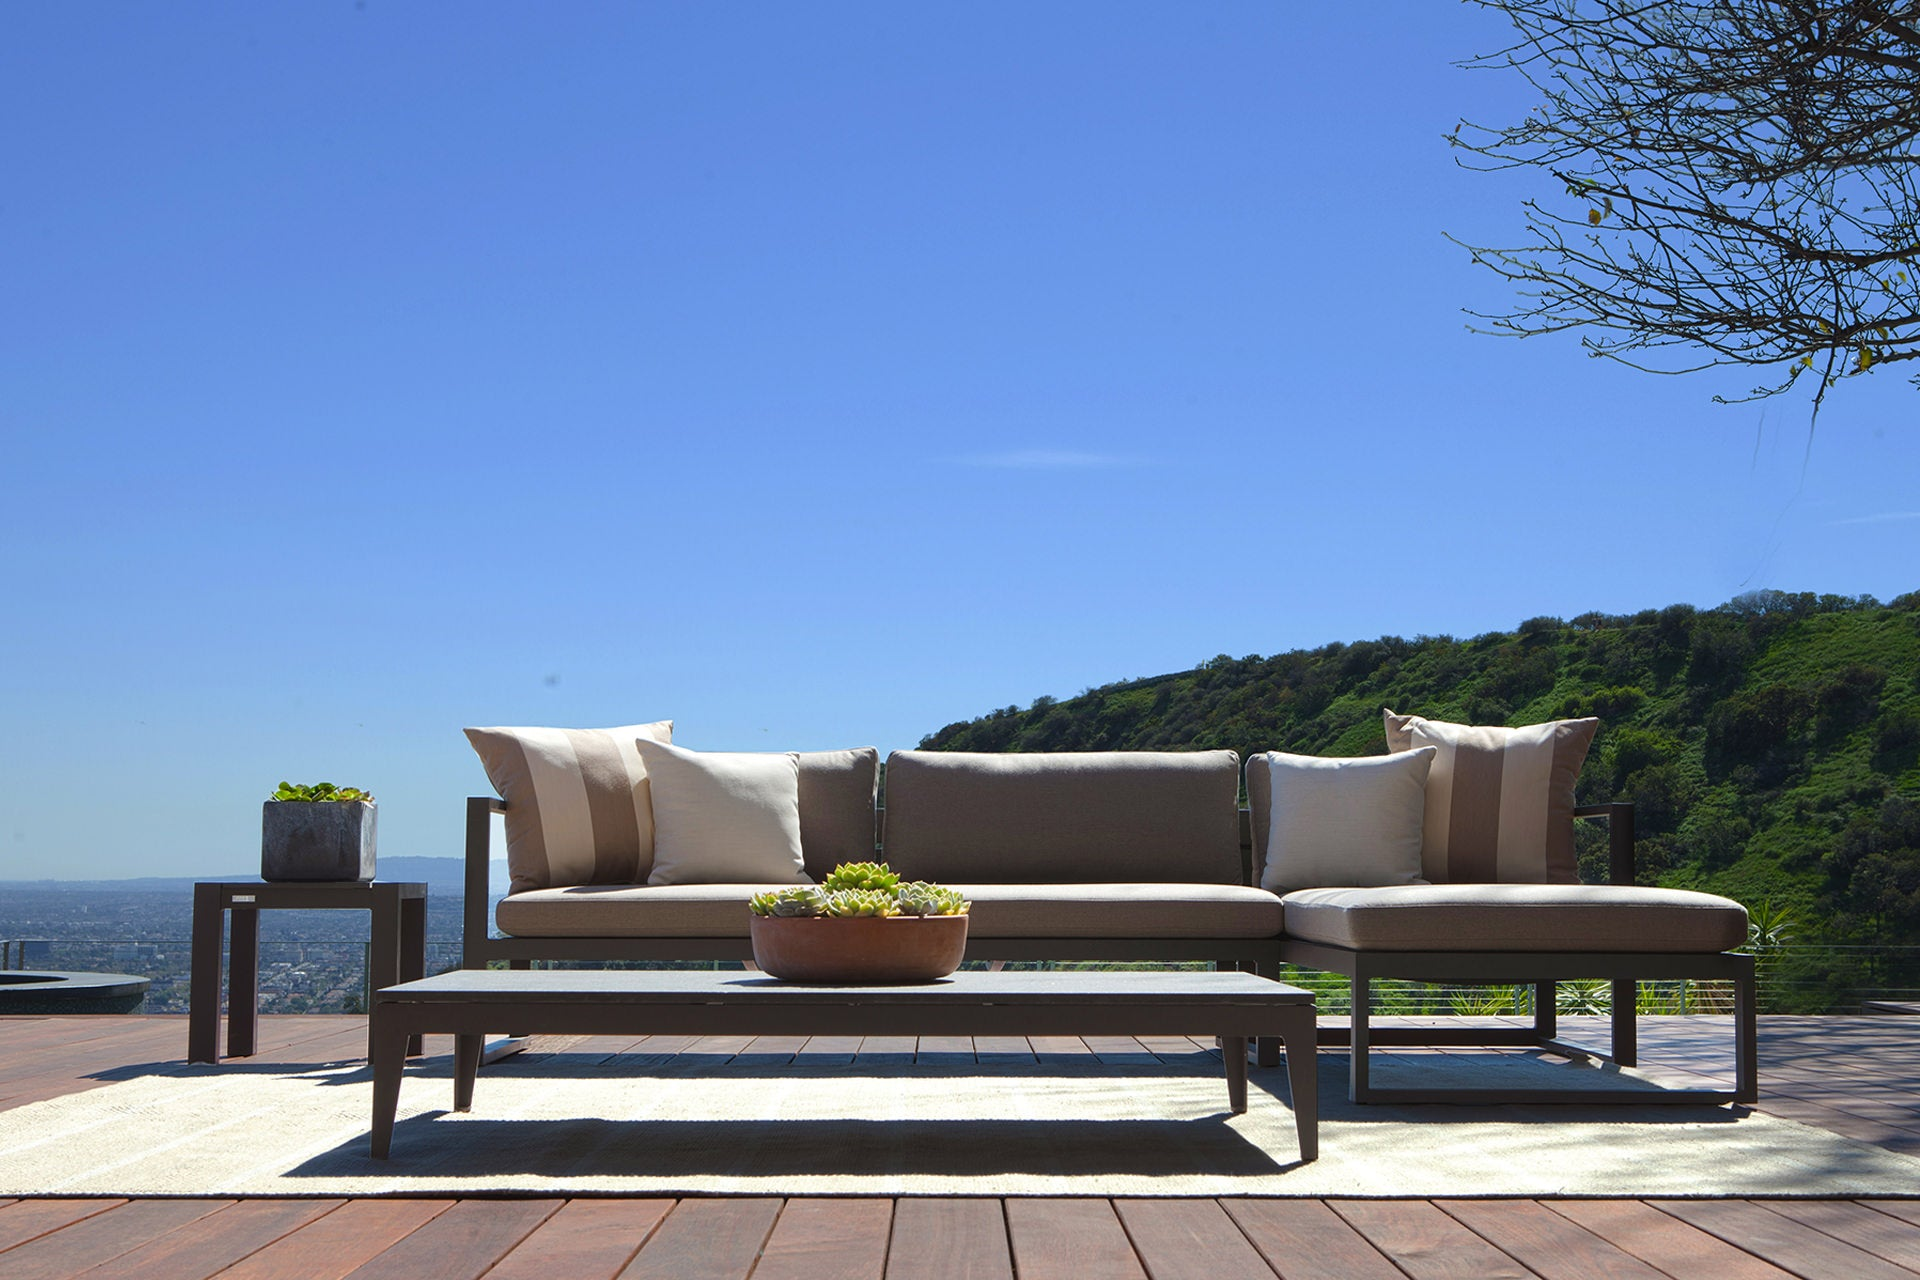 Online Outdoor Furniture, Patio, Weave, Teak, Firetables   LA, NY ... Part 32